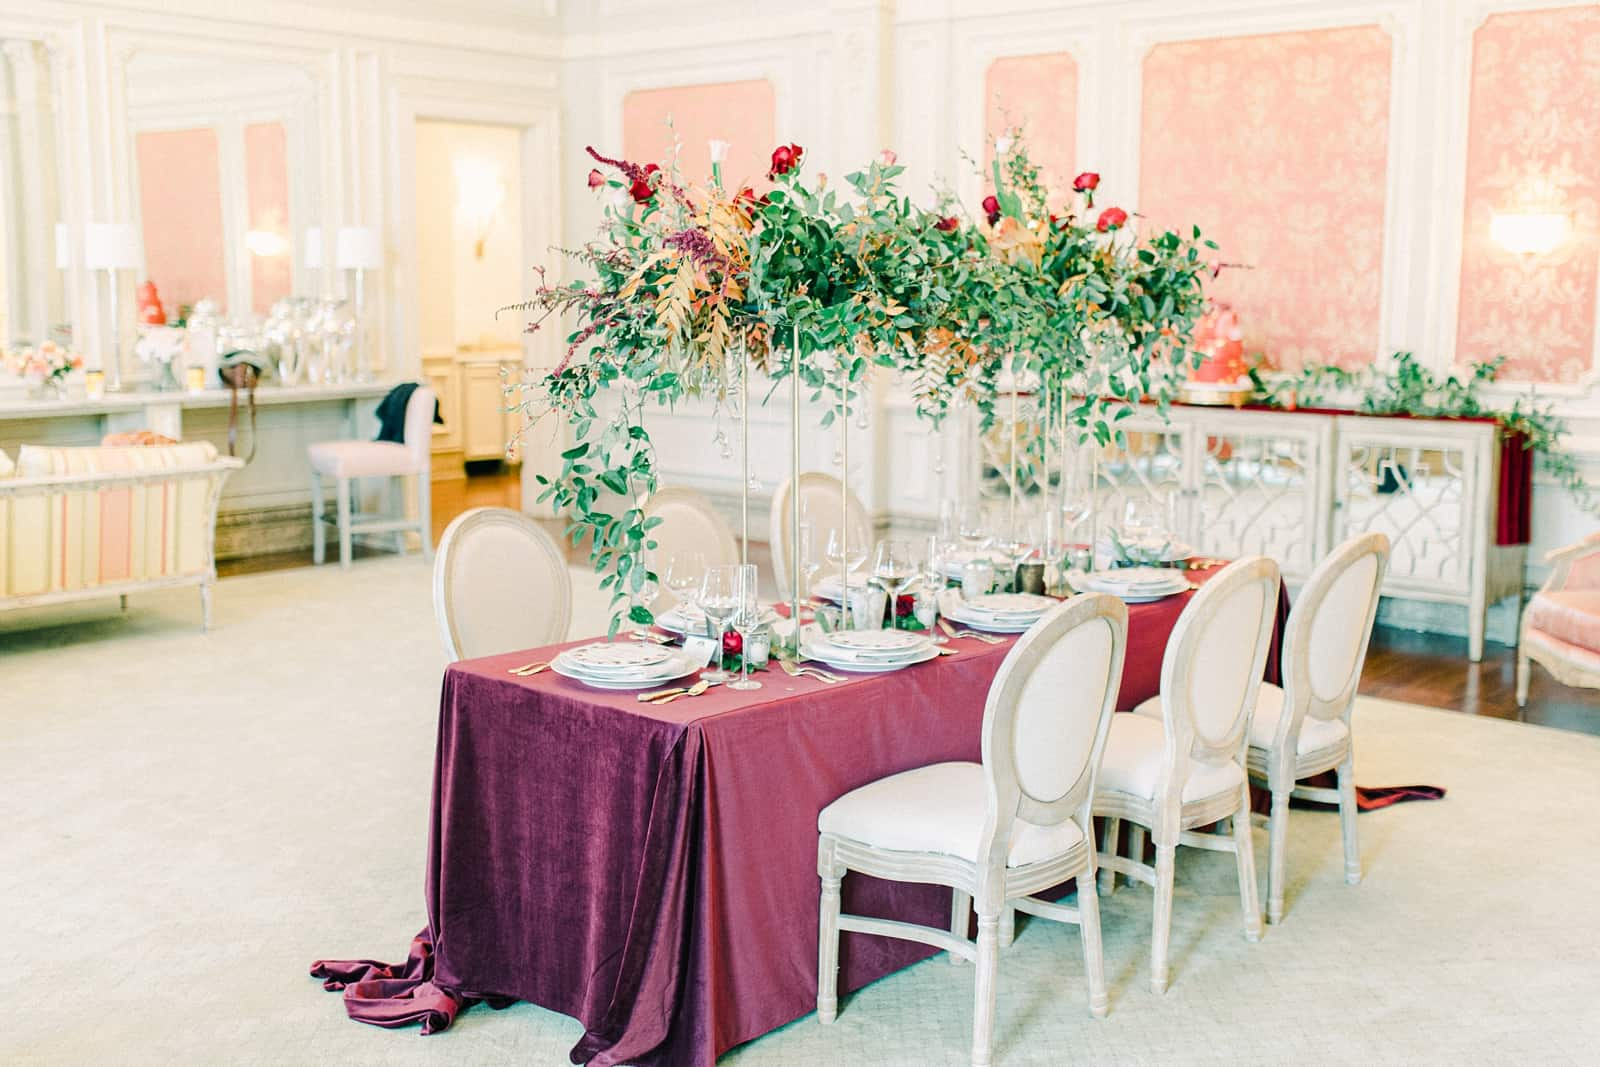 Maroon tablecloth, wedding table with tall geometric centerpieces